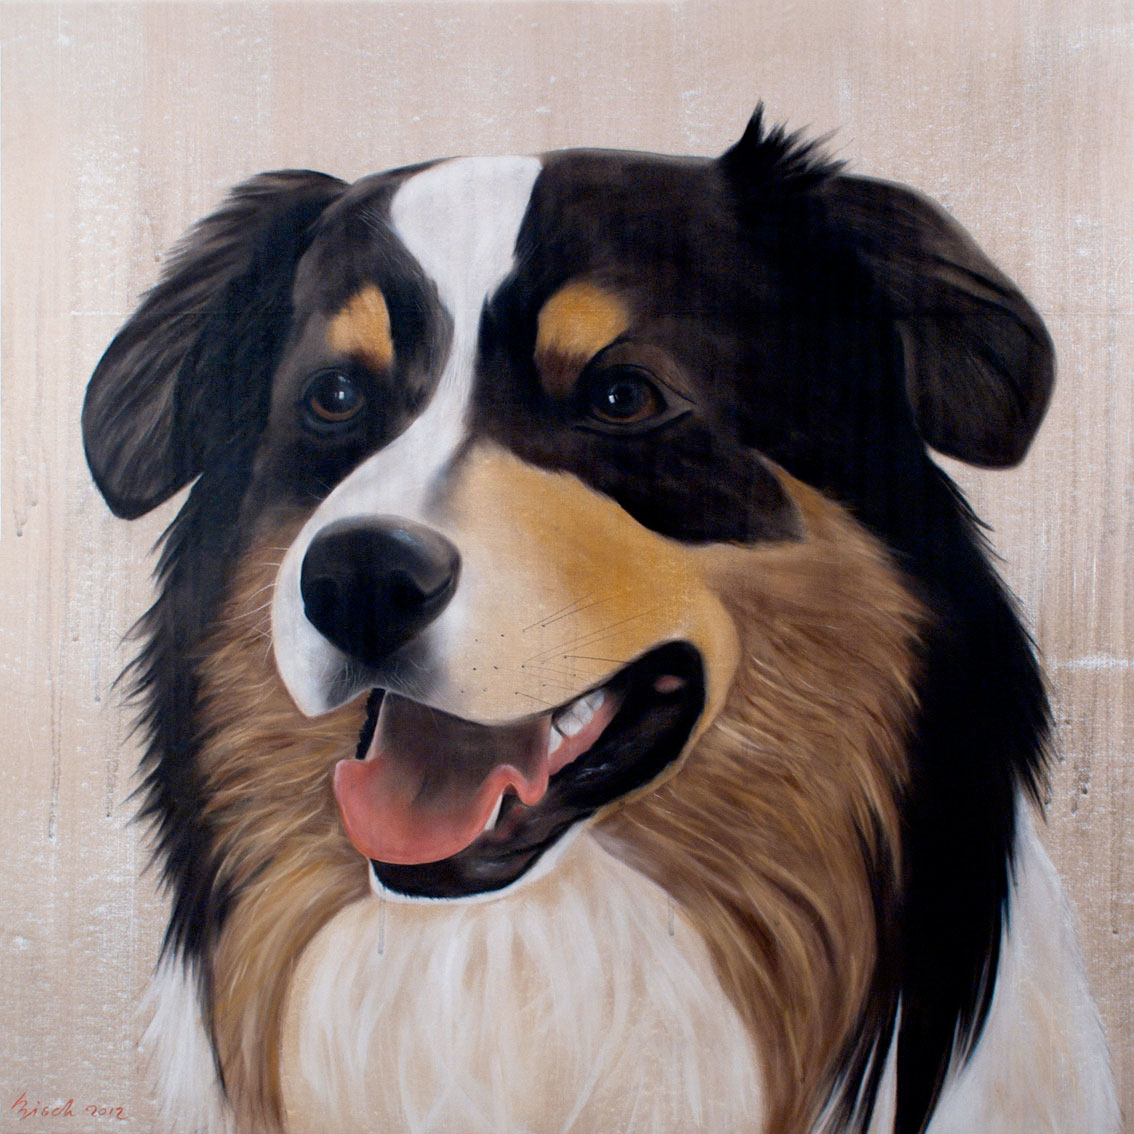 Gus Dog Australian%20shepperd%20aussie%20truffle%20dog%20pet Thierry Bisch painter animals painting art decoration hotel design interior luxury nature biodiversity conservation